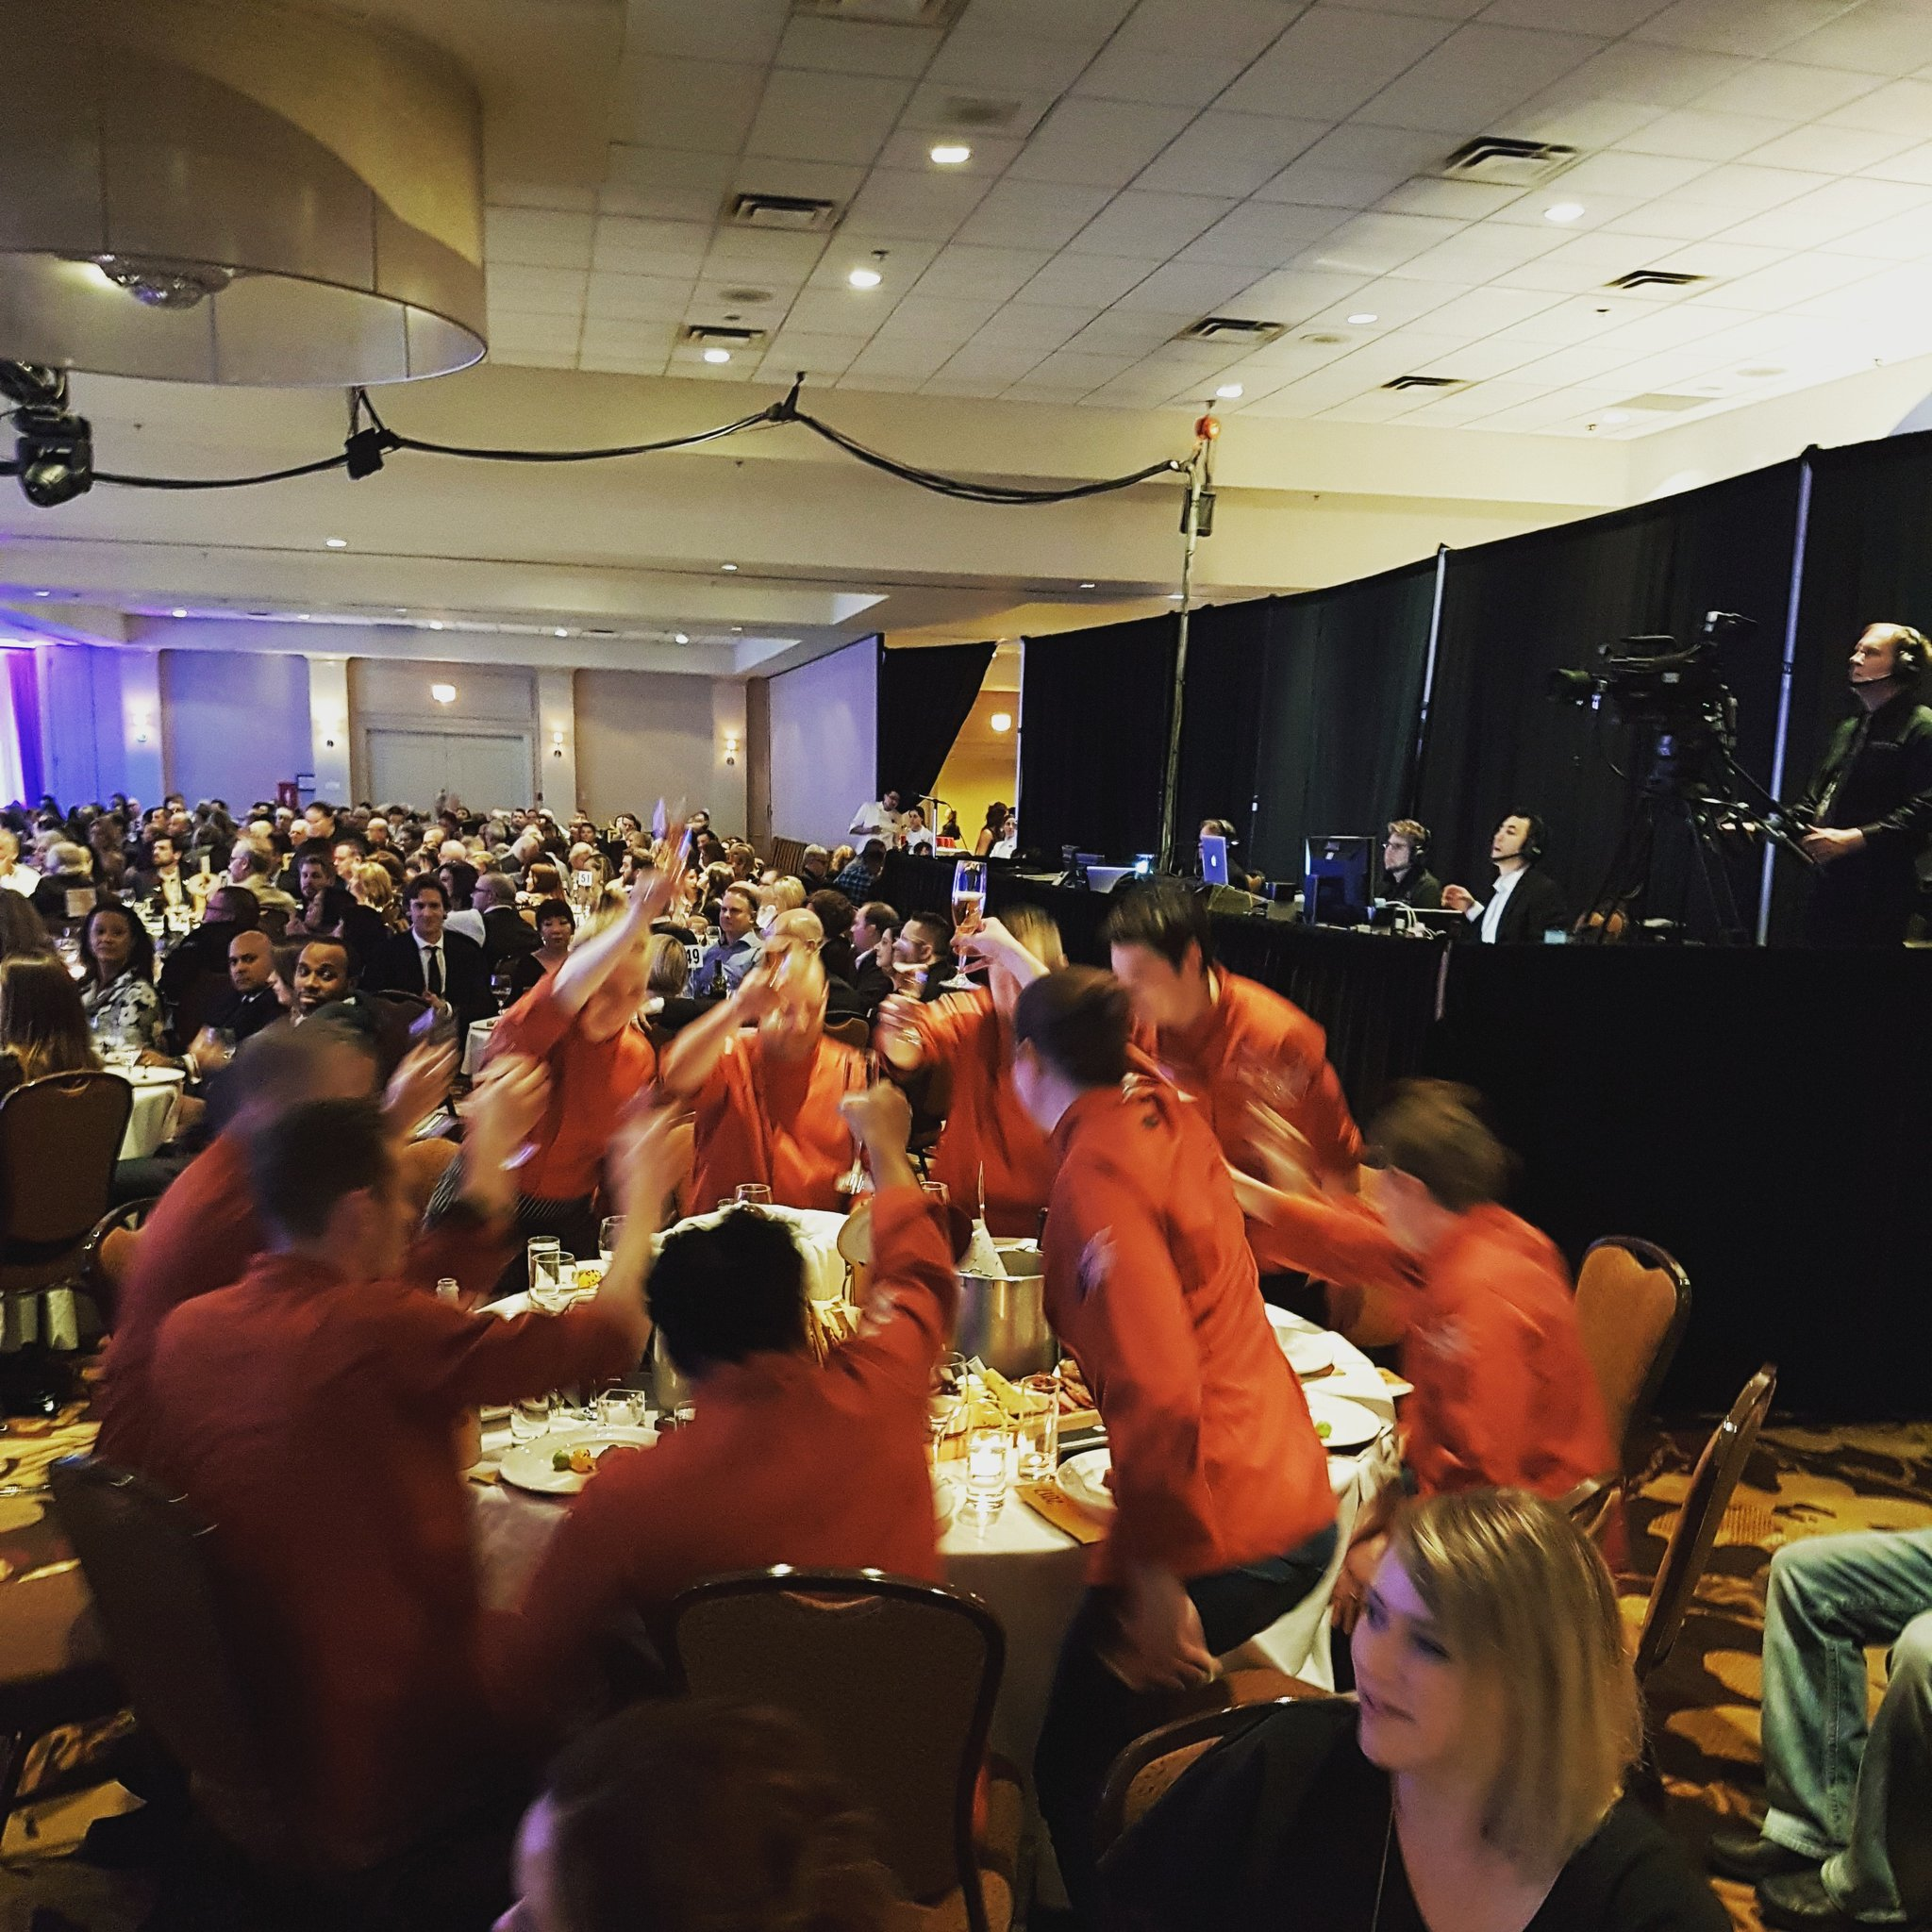 Cheers to the @GoldMedalPlates Chefs! Now we celebrate! #CCC2017 https://t.co/X4wU8bVfK2